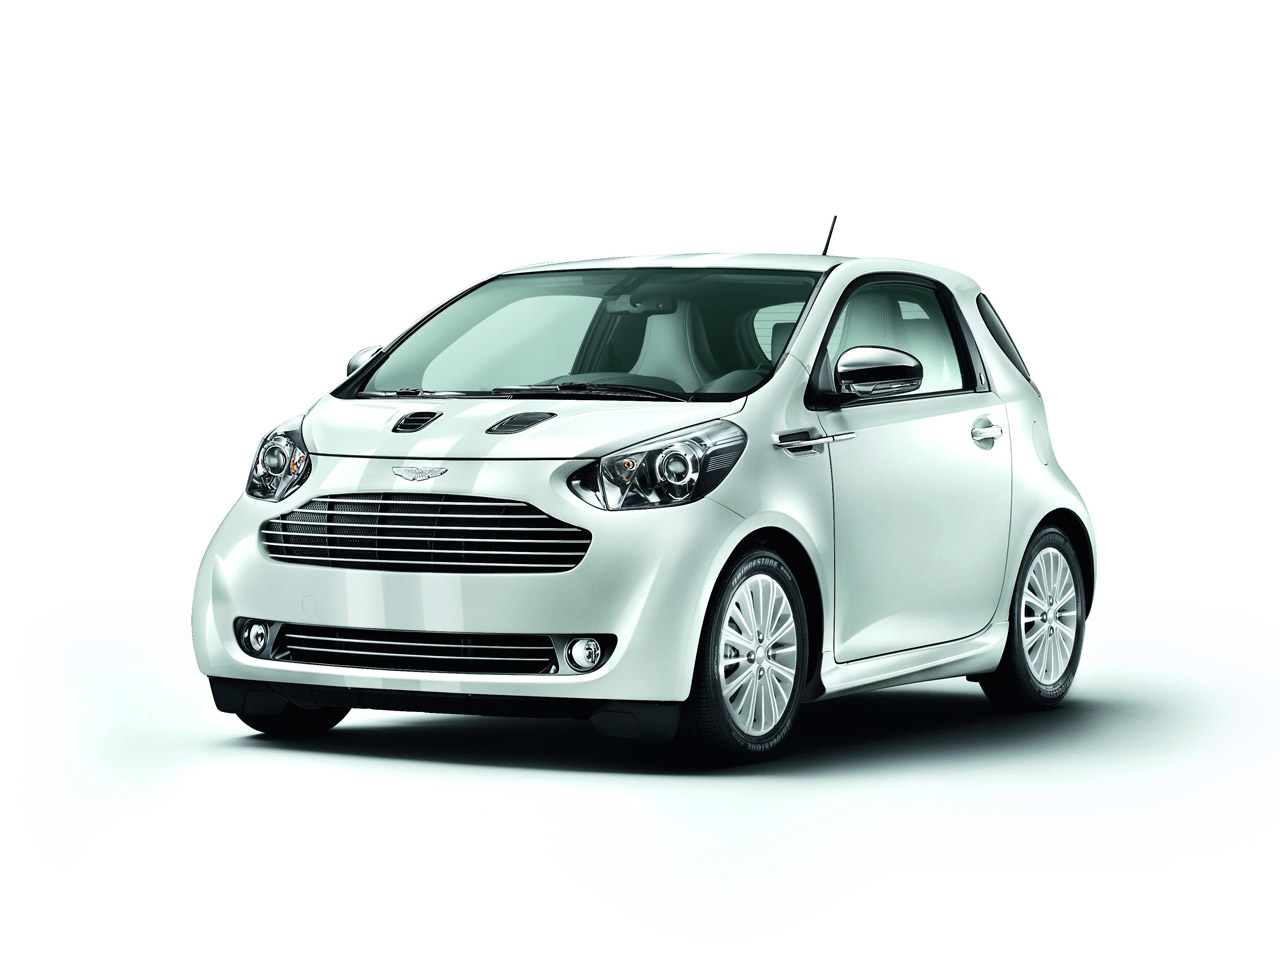 aston martin can 39 t build cygnet fast enough to keep up. Black Bedroom Furniture Sets. Home Design Ideas